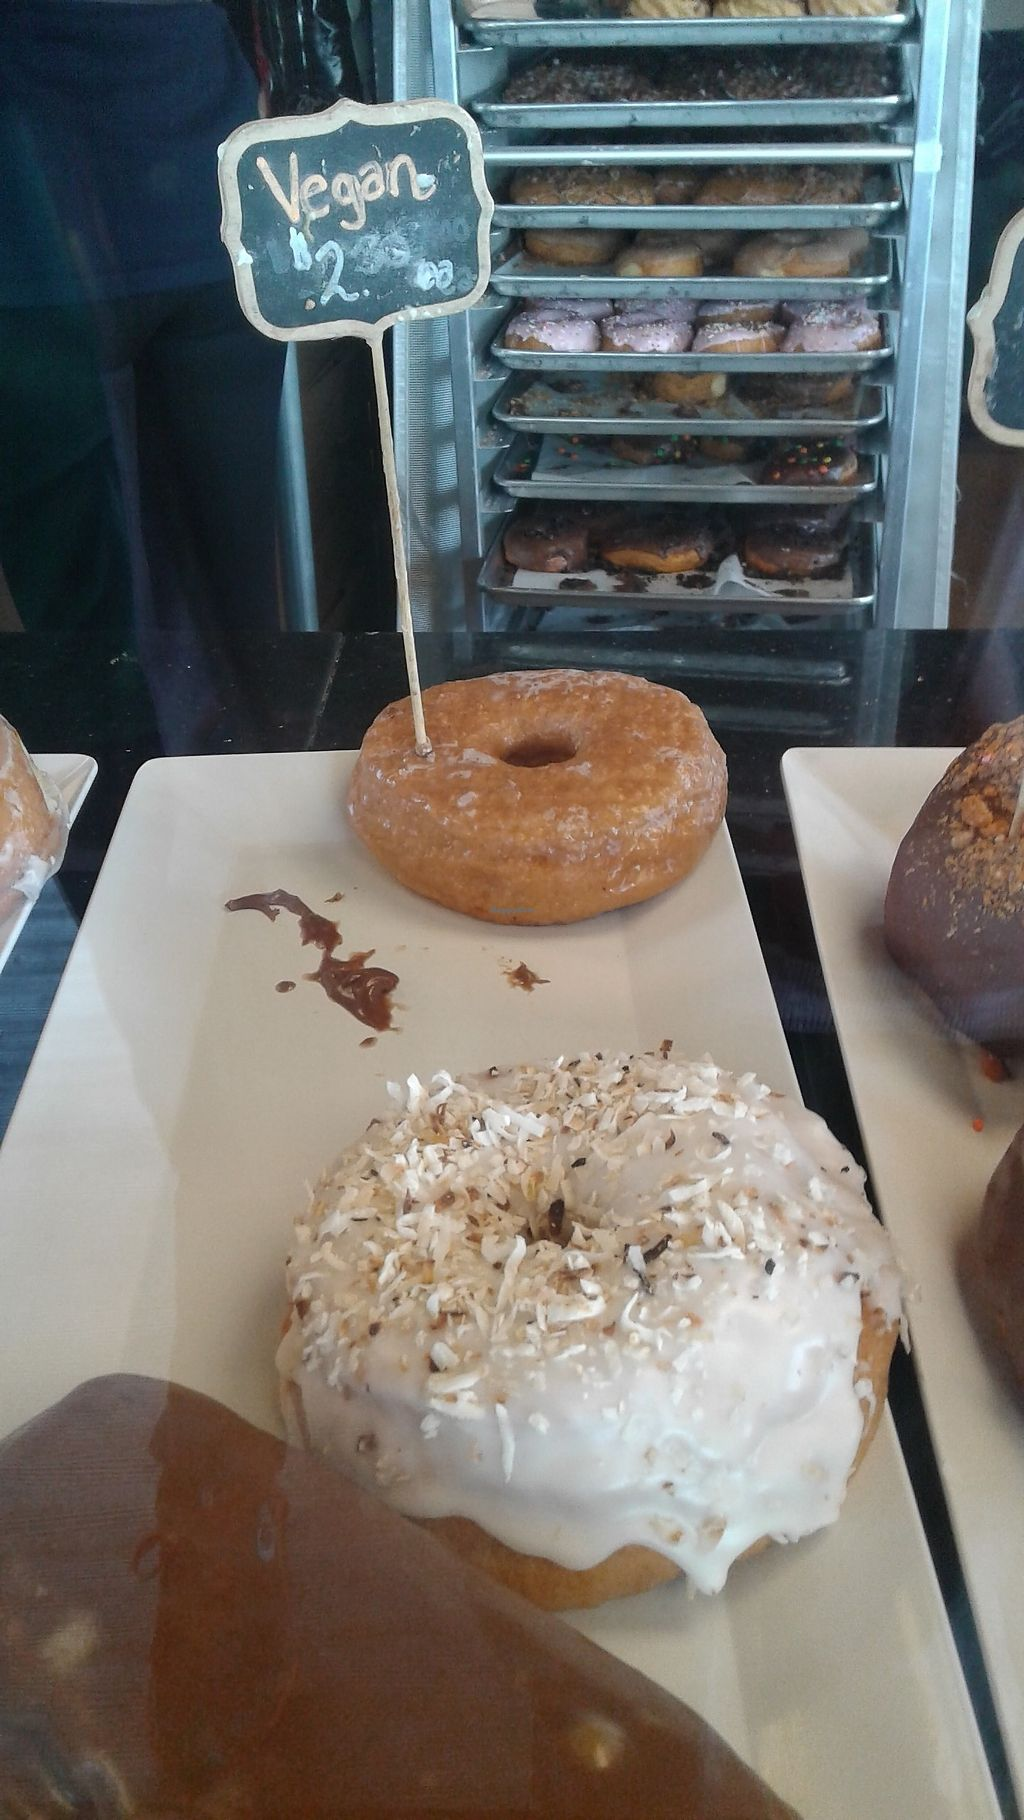 """Photo of Casual Friday Donuts  by <a href=""""/members/profile/J%20and%20J"""">J and J</a> <br/>Vegan doughnuts! <br/> September 8, 2017  - <a href='/contact/abuse/image/56546/302019'>Report</a>"""